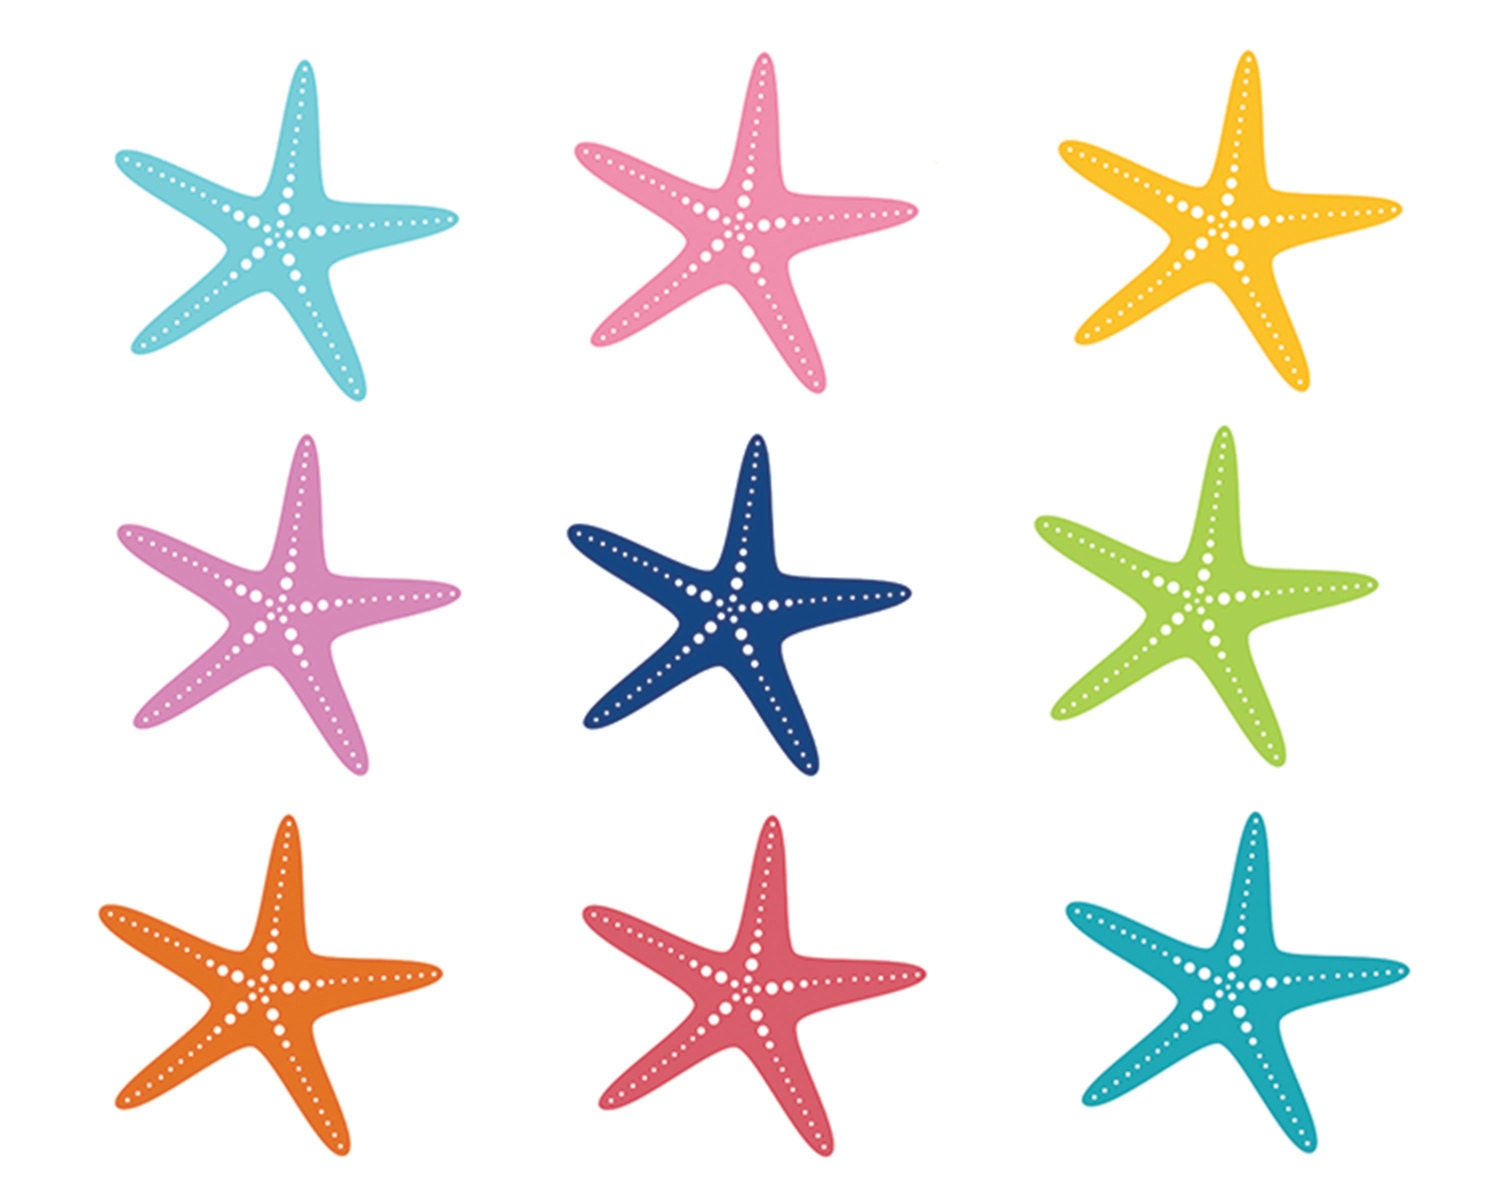 60 off sale nautical clipart starfish clip art sea ocean fish rh etsy com starfish clipart png starfish clipart blue